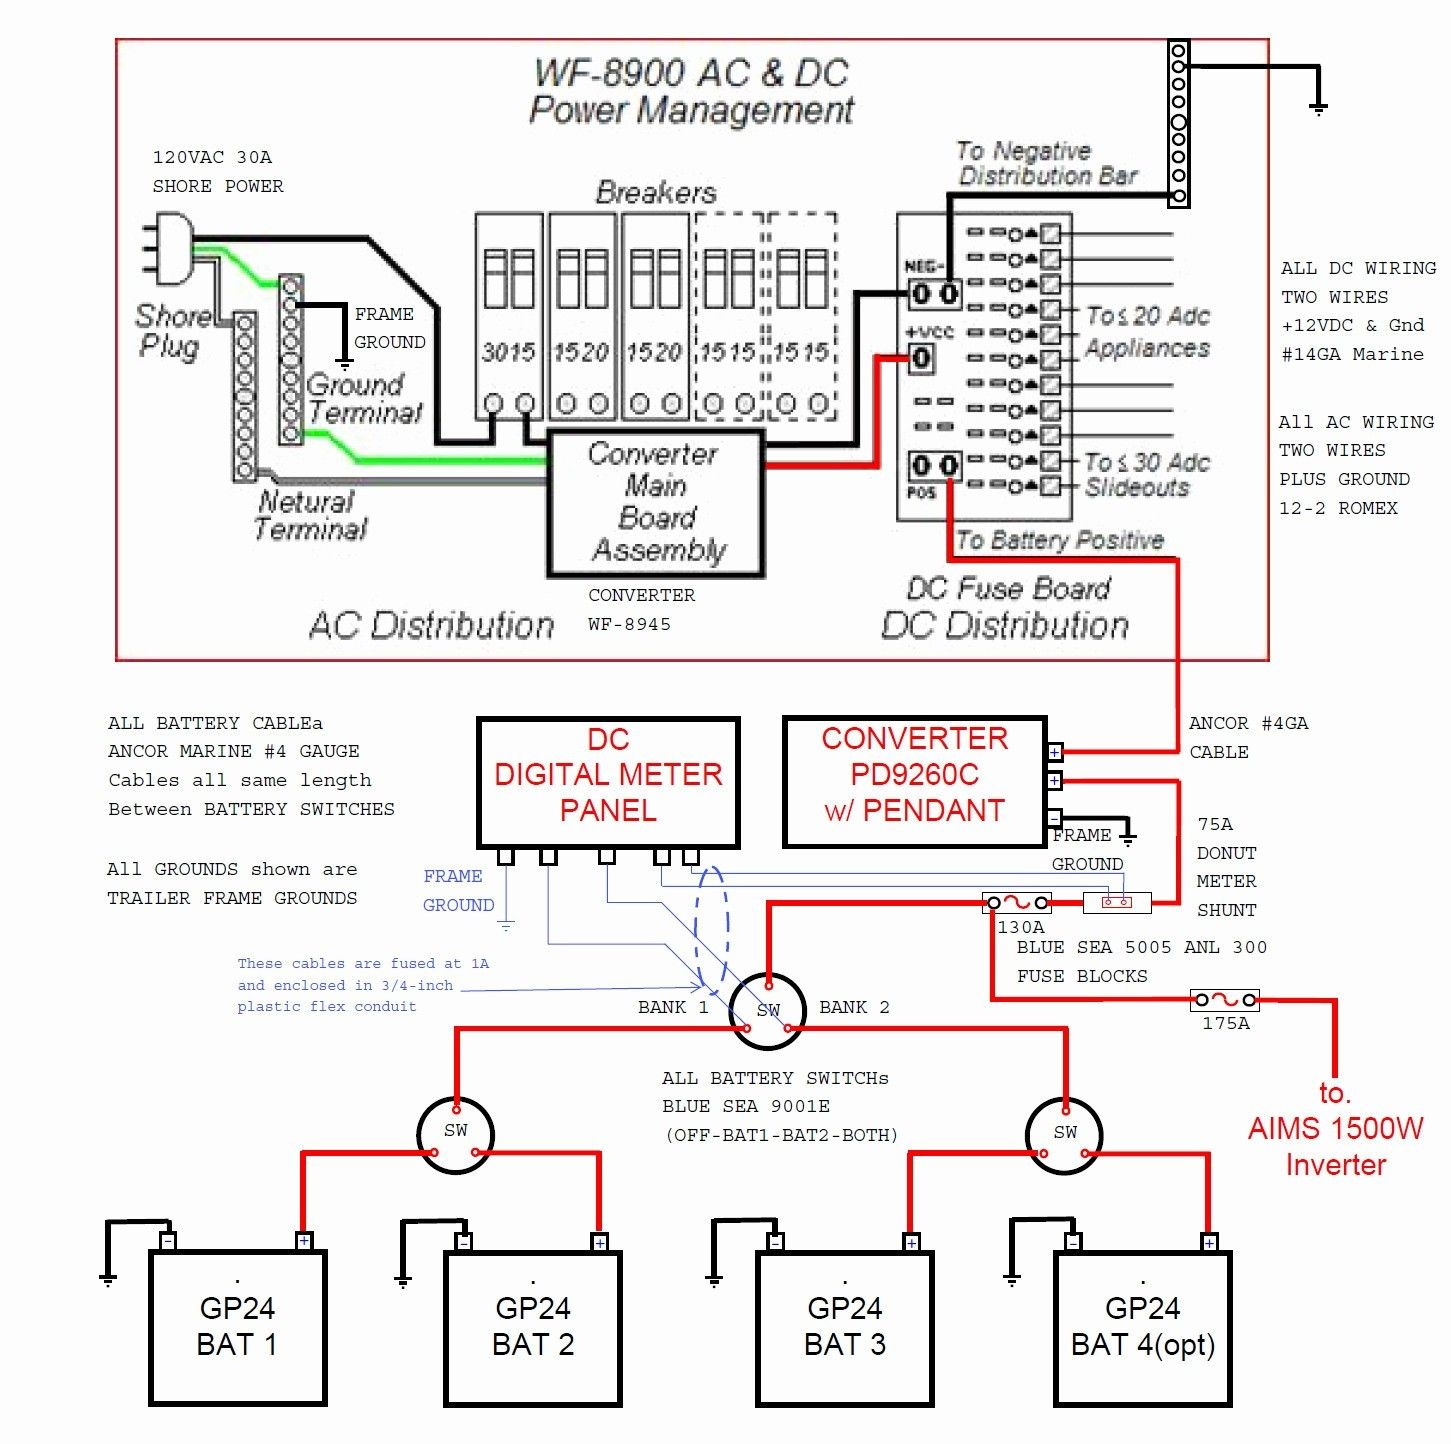 hight resolution of wiring diagram also 30 generator power cord inlet box likewise power30 amp generator plug diagram wiring